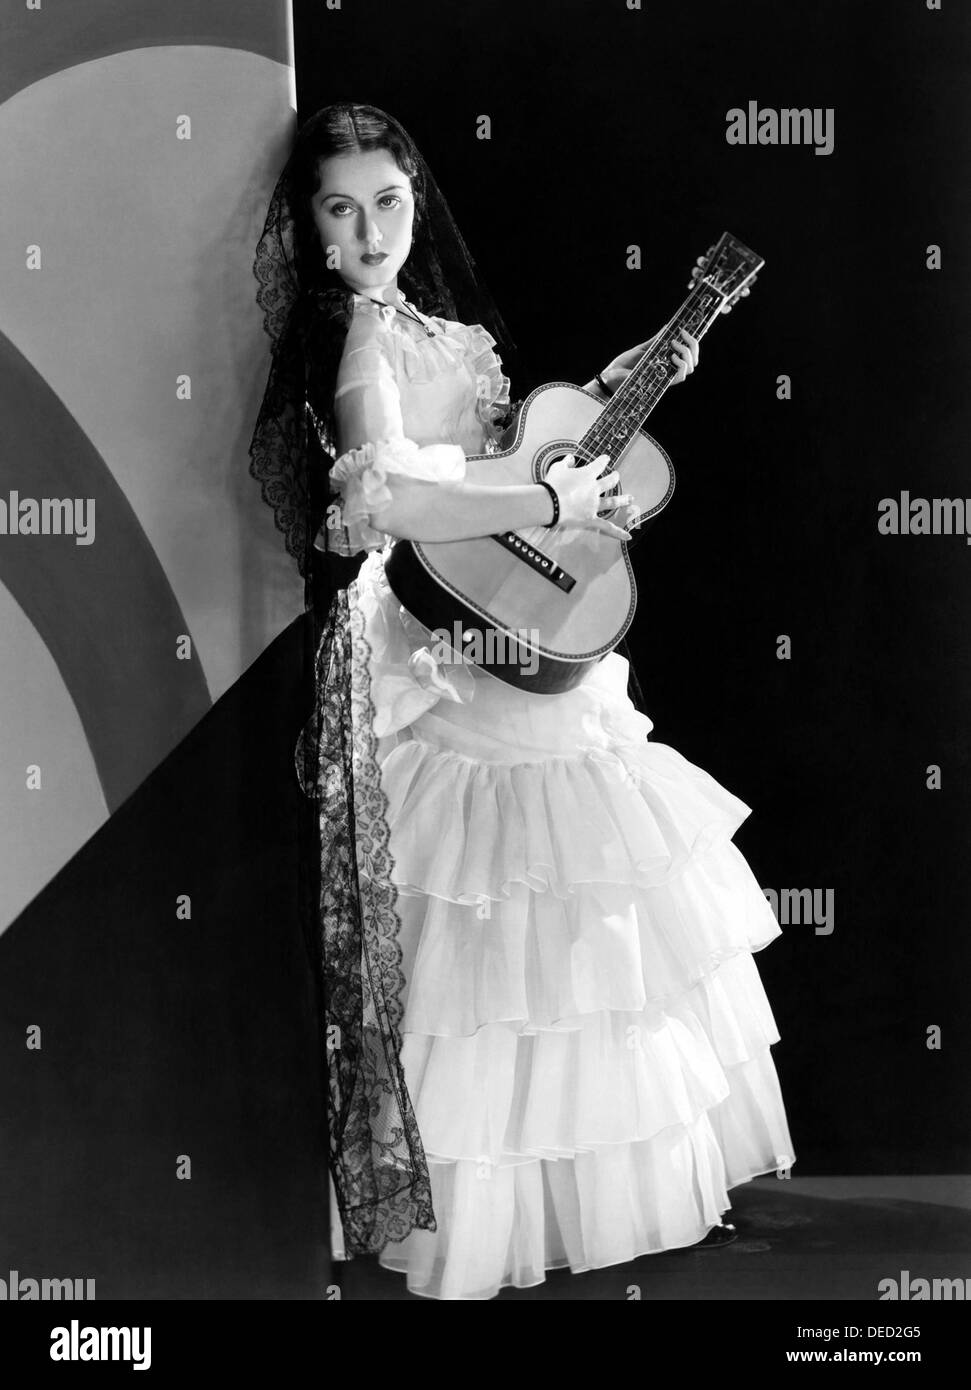 THE TEXAN  1930 Paramount film with Fay Wray - Stock Image